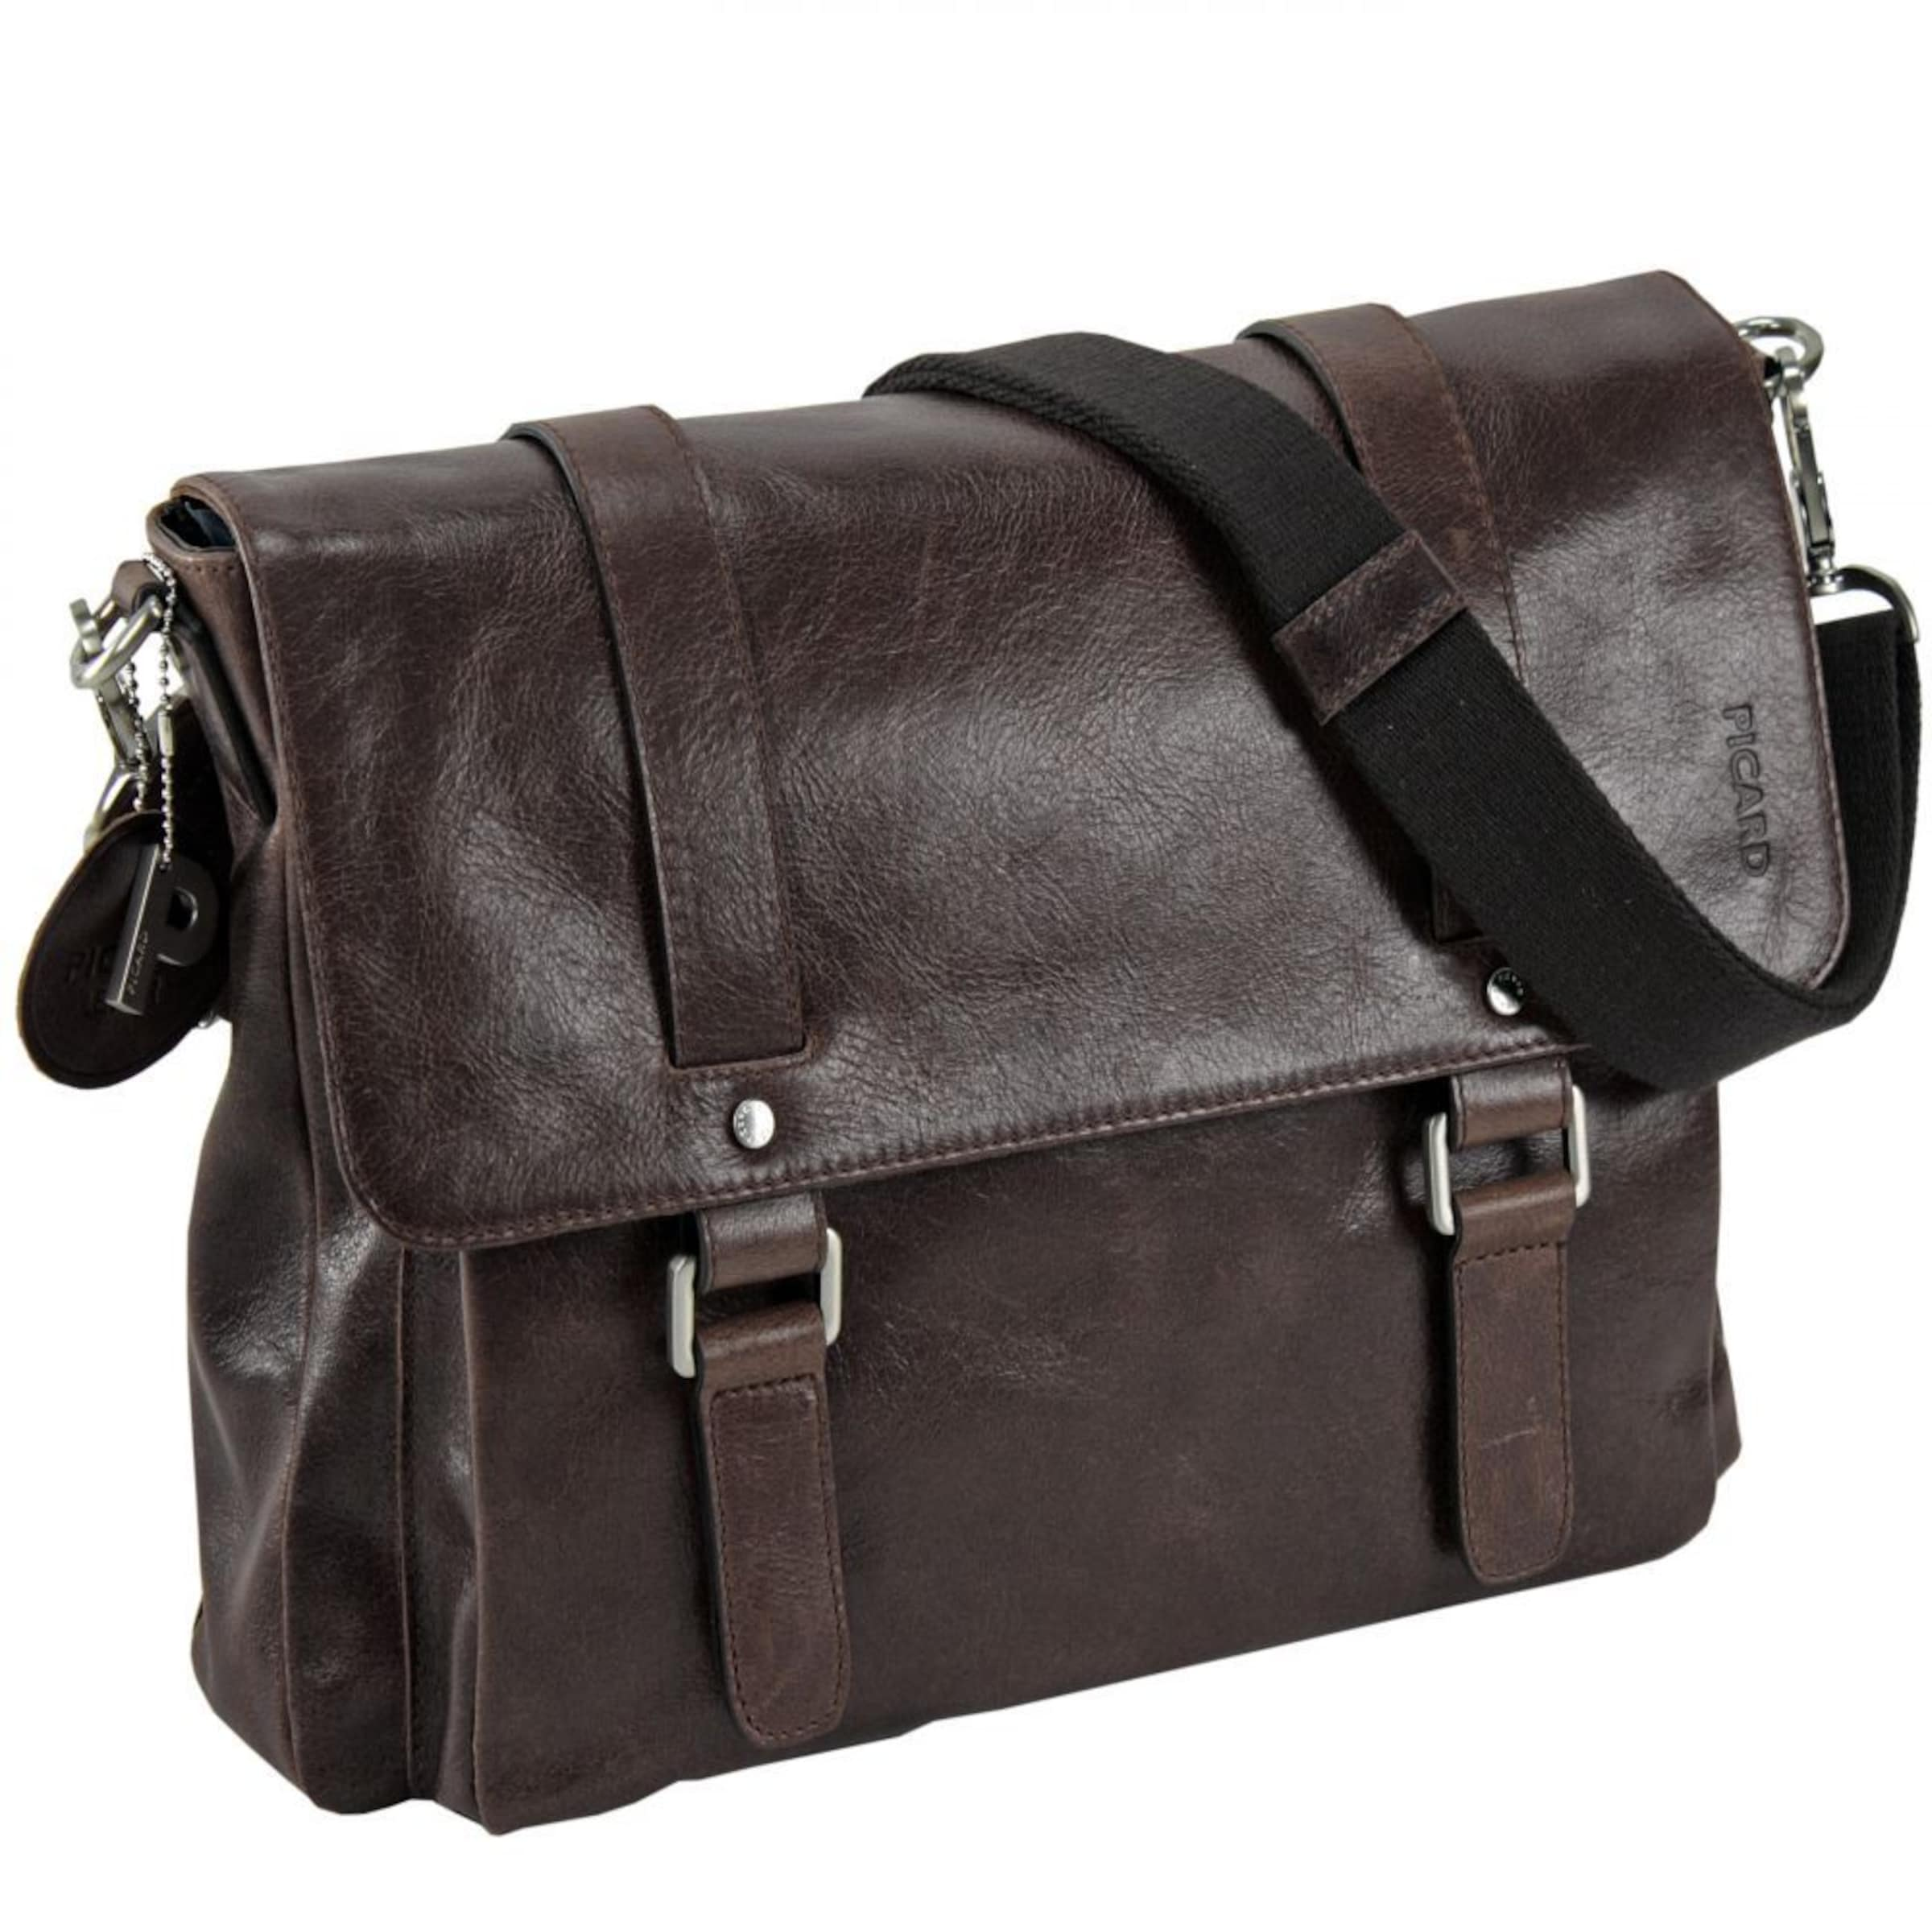 Buddy In 37 tasche Braun Business Leder Picard Cm QrtshCxd